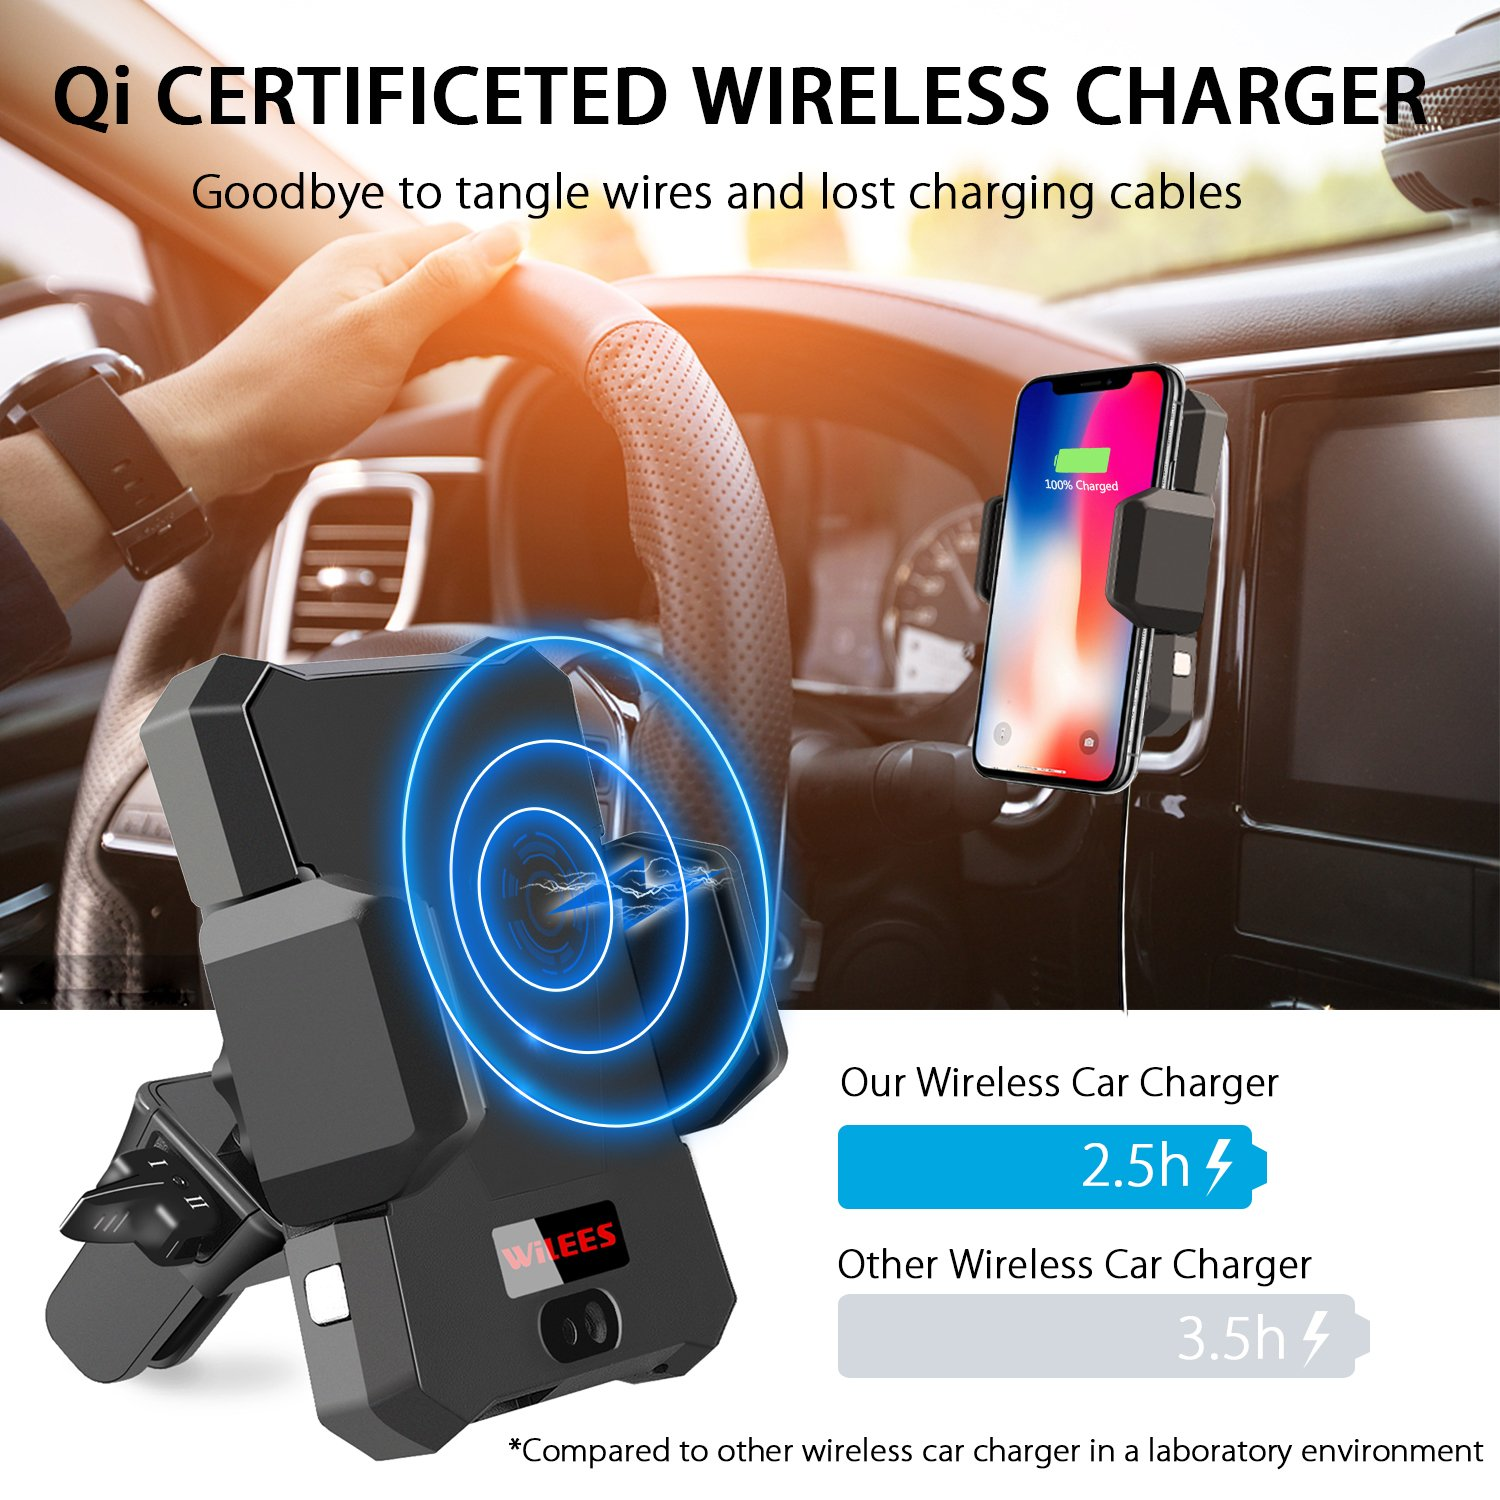 Wireless Car Charger, WiLEES Automatic Qi Wireless Car Charger Air Vent Phone Holder, True Single Hand Car Phone Mounting for iPhone X 8/8 Plus Samsung Galaxy S9 S9 Plus S8 S7/S7 Edge Note 8 5 by WiLEES (Image #2)